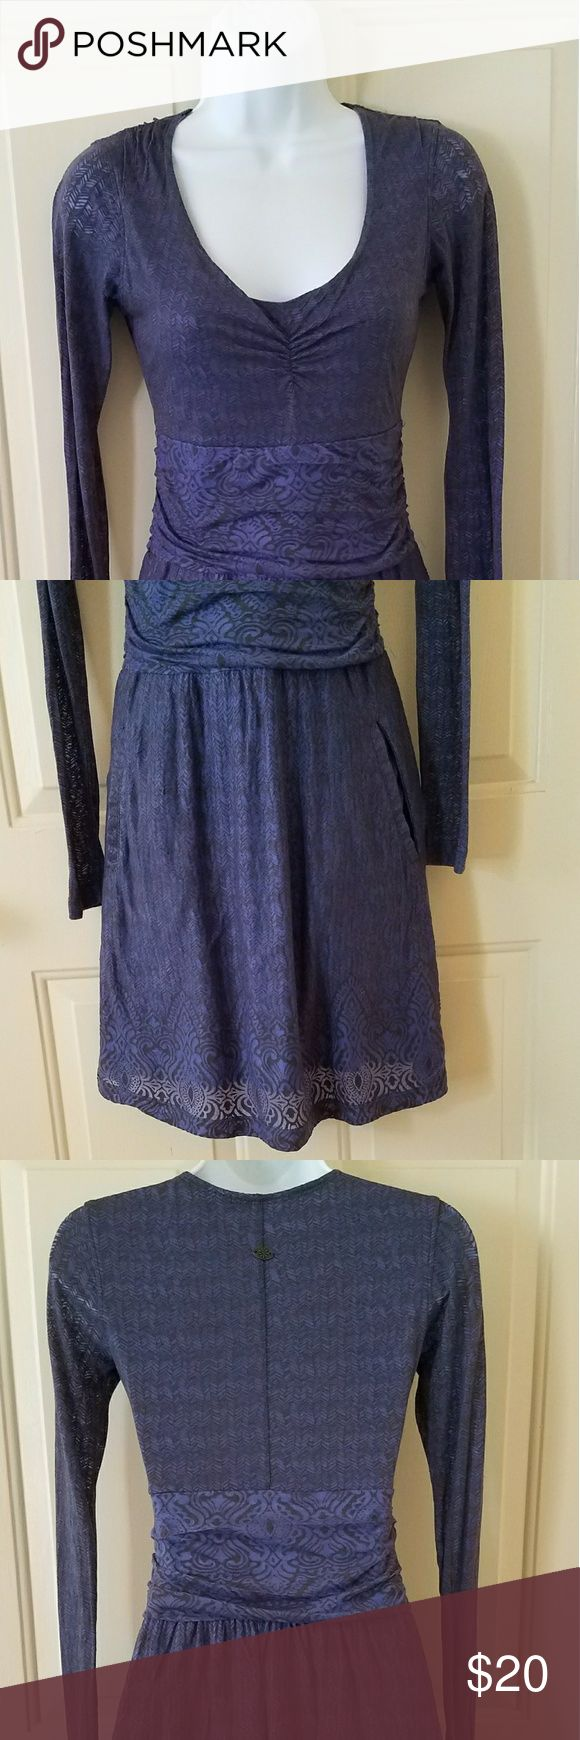 """Athleta long sleeve dress Cute long sleeve dress with scoop neckline. It has two pockets making this a very practical and functional dress.  Measurements  Chest 29"""" Sleeve 24.5"""" Length 35"""" Athleta Dresses Long Sleeve"""